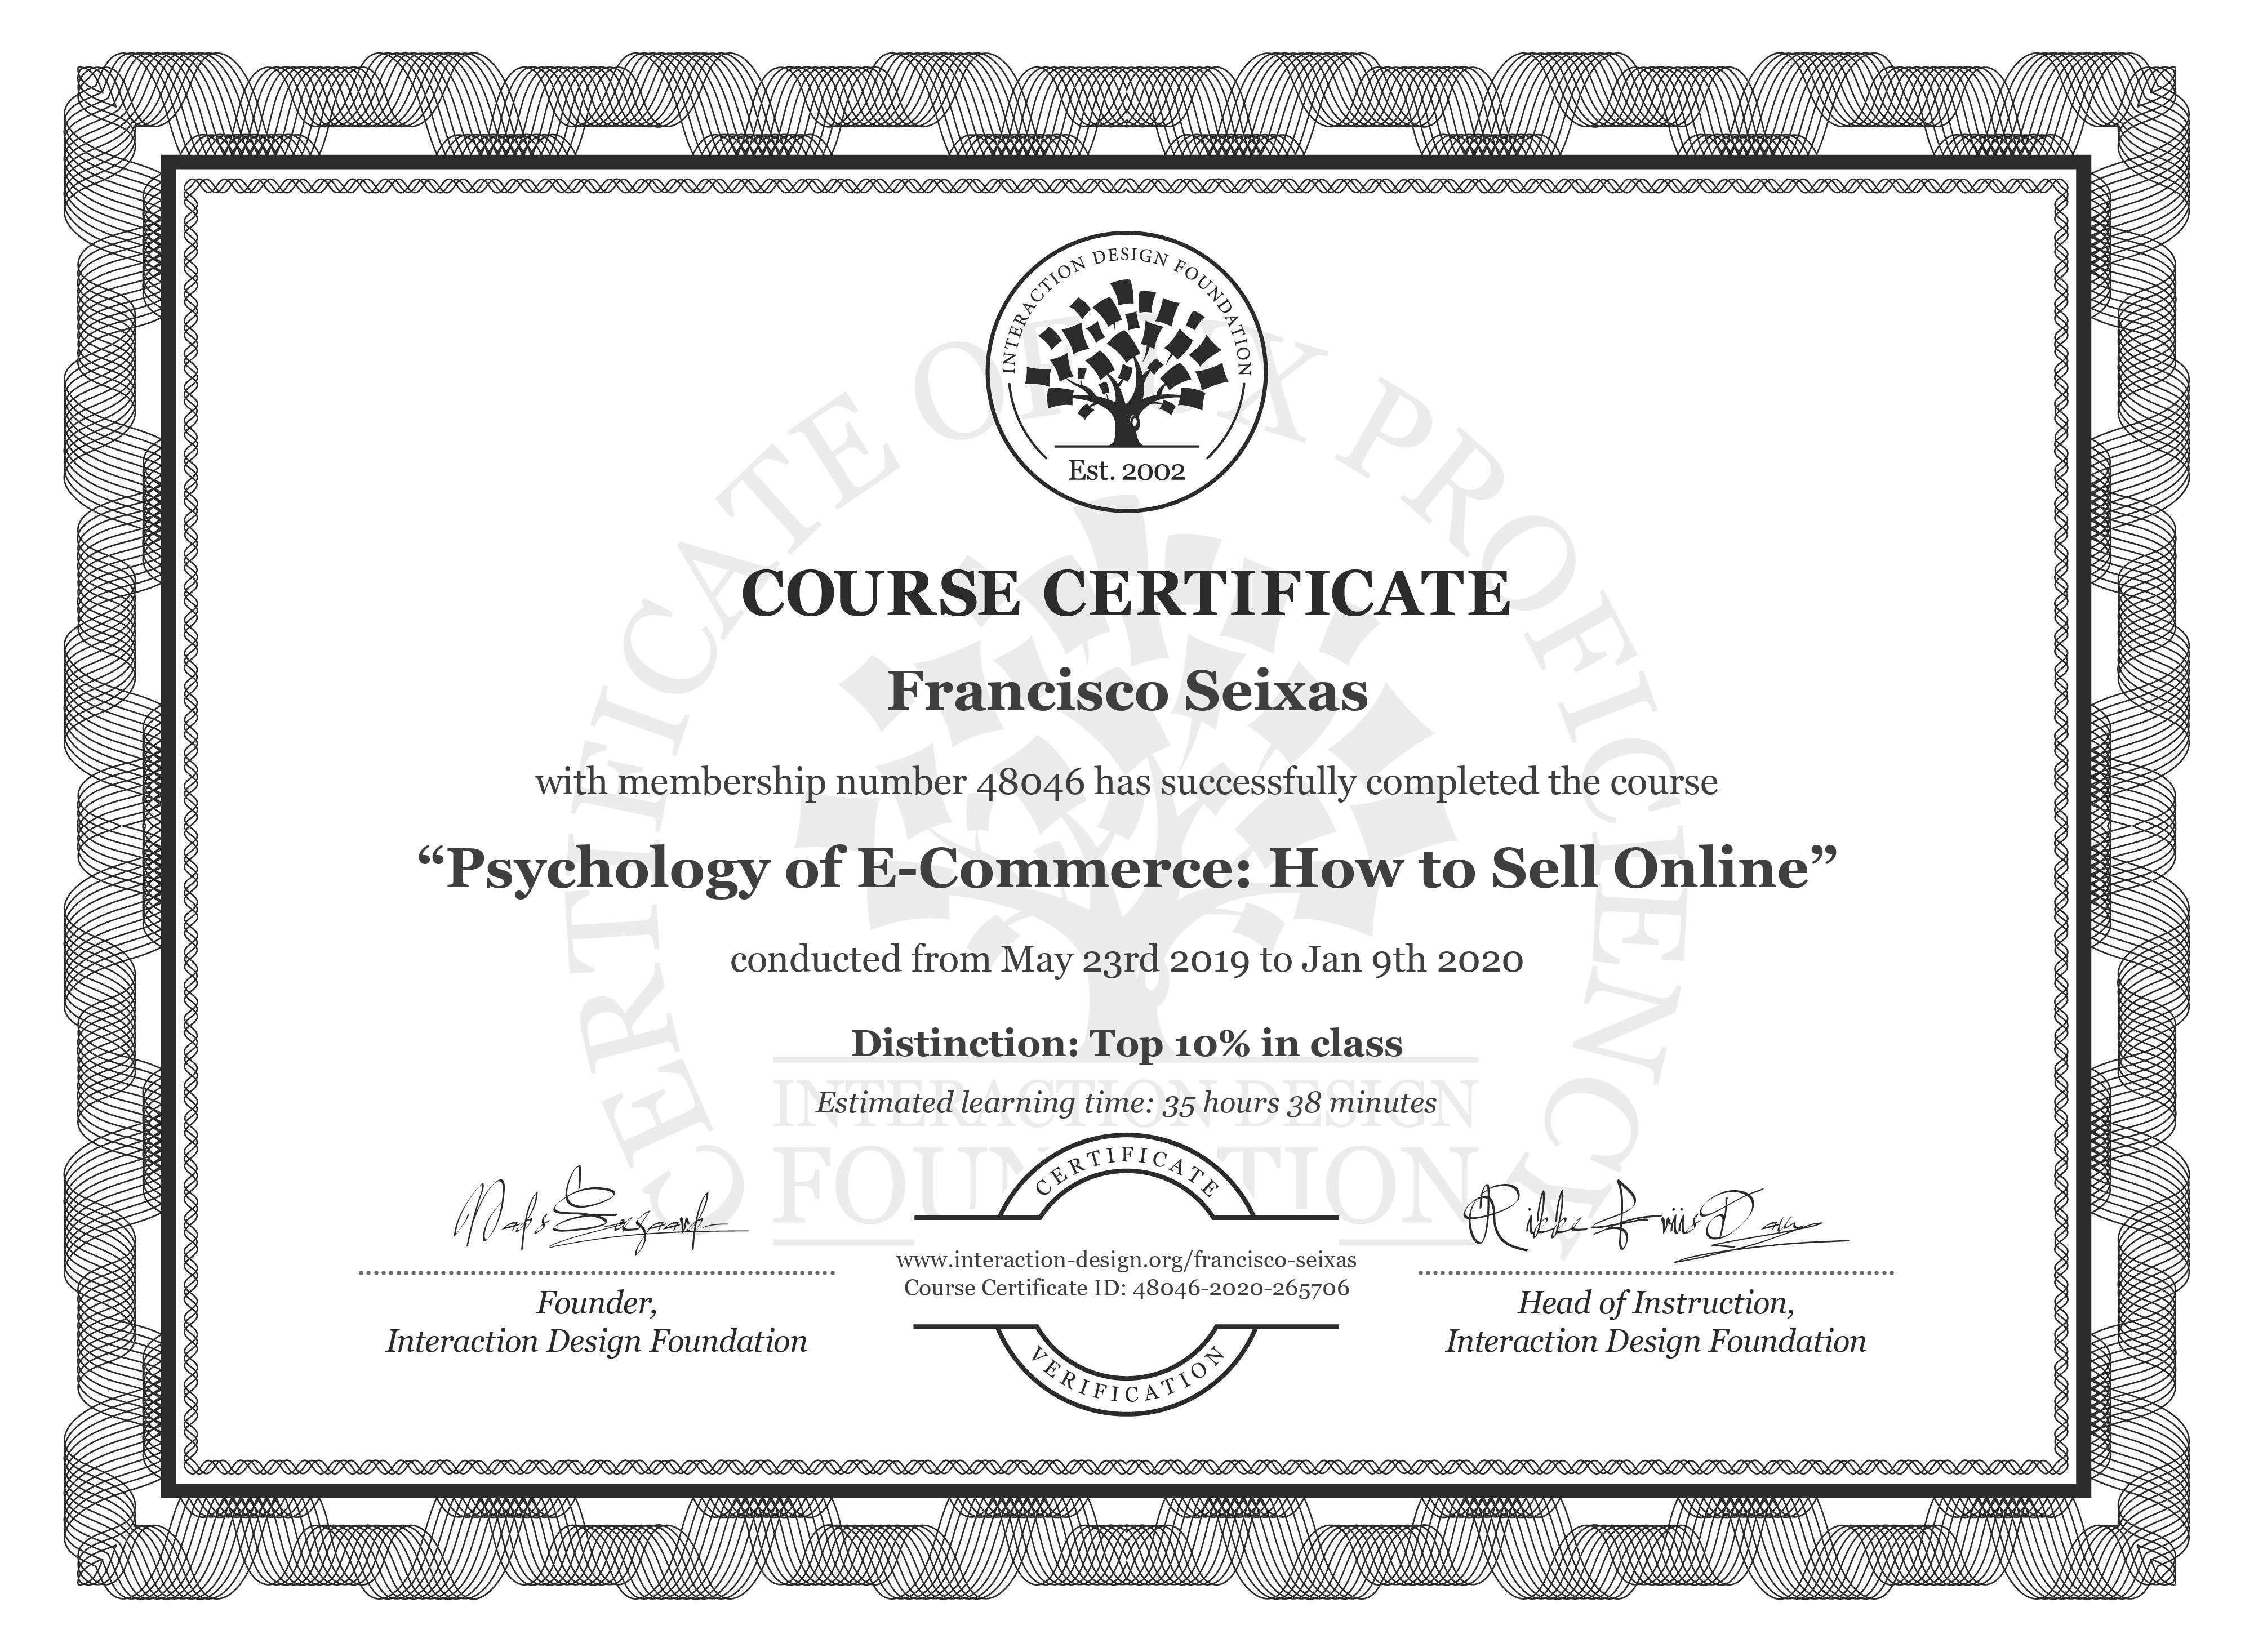 Francisco Seixas: Course Certificate - Psychology of E-Commerce: How to Sell Online